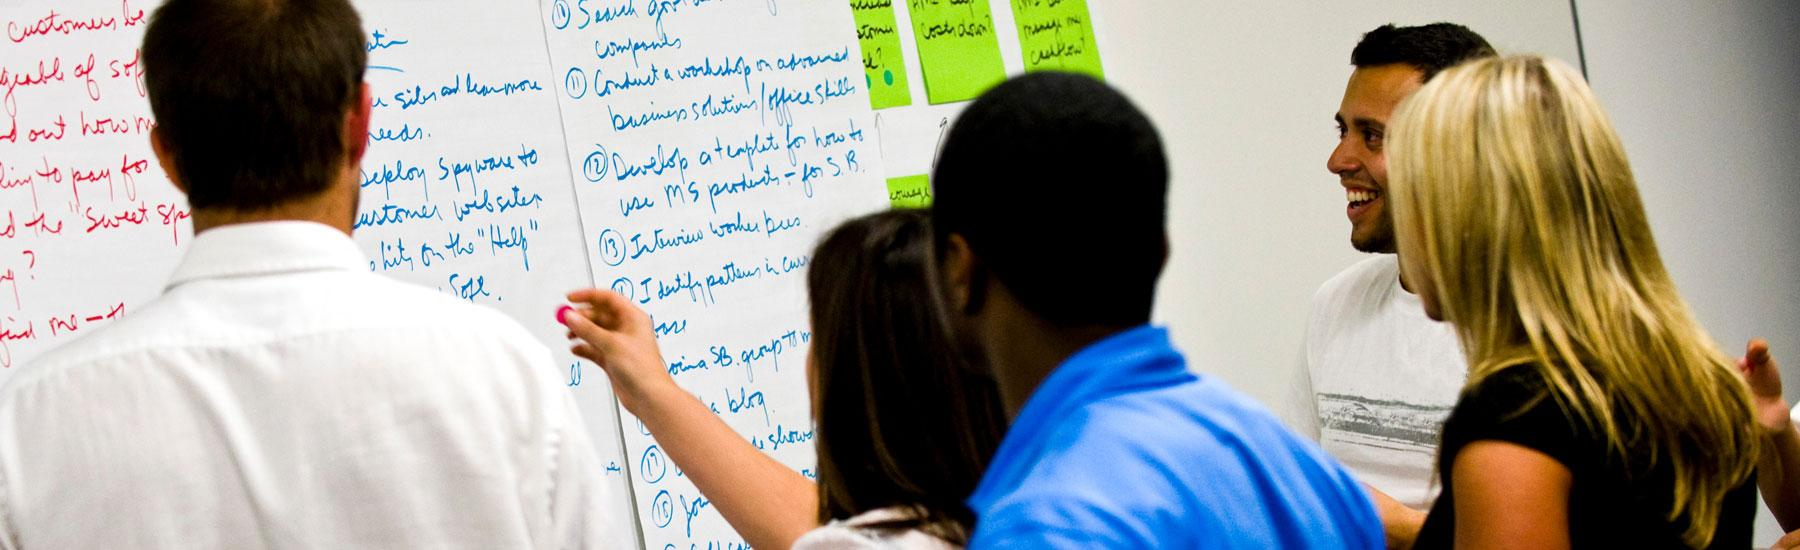 GSEP students write on the board - Pepperdine GSEP